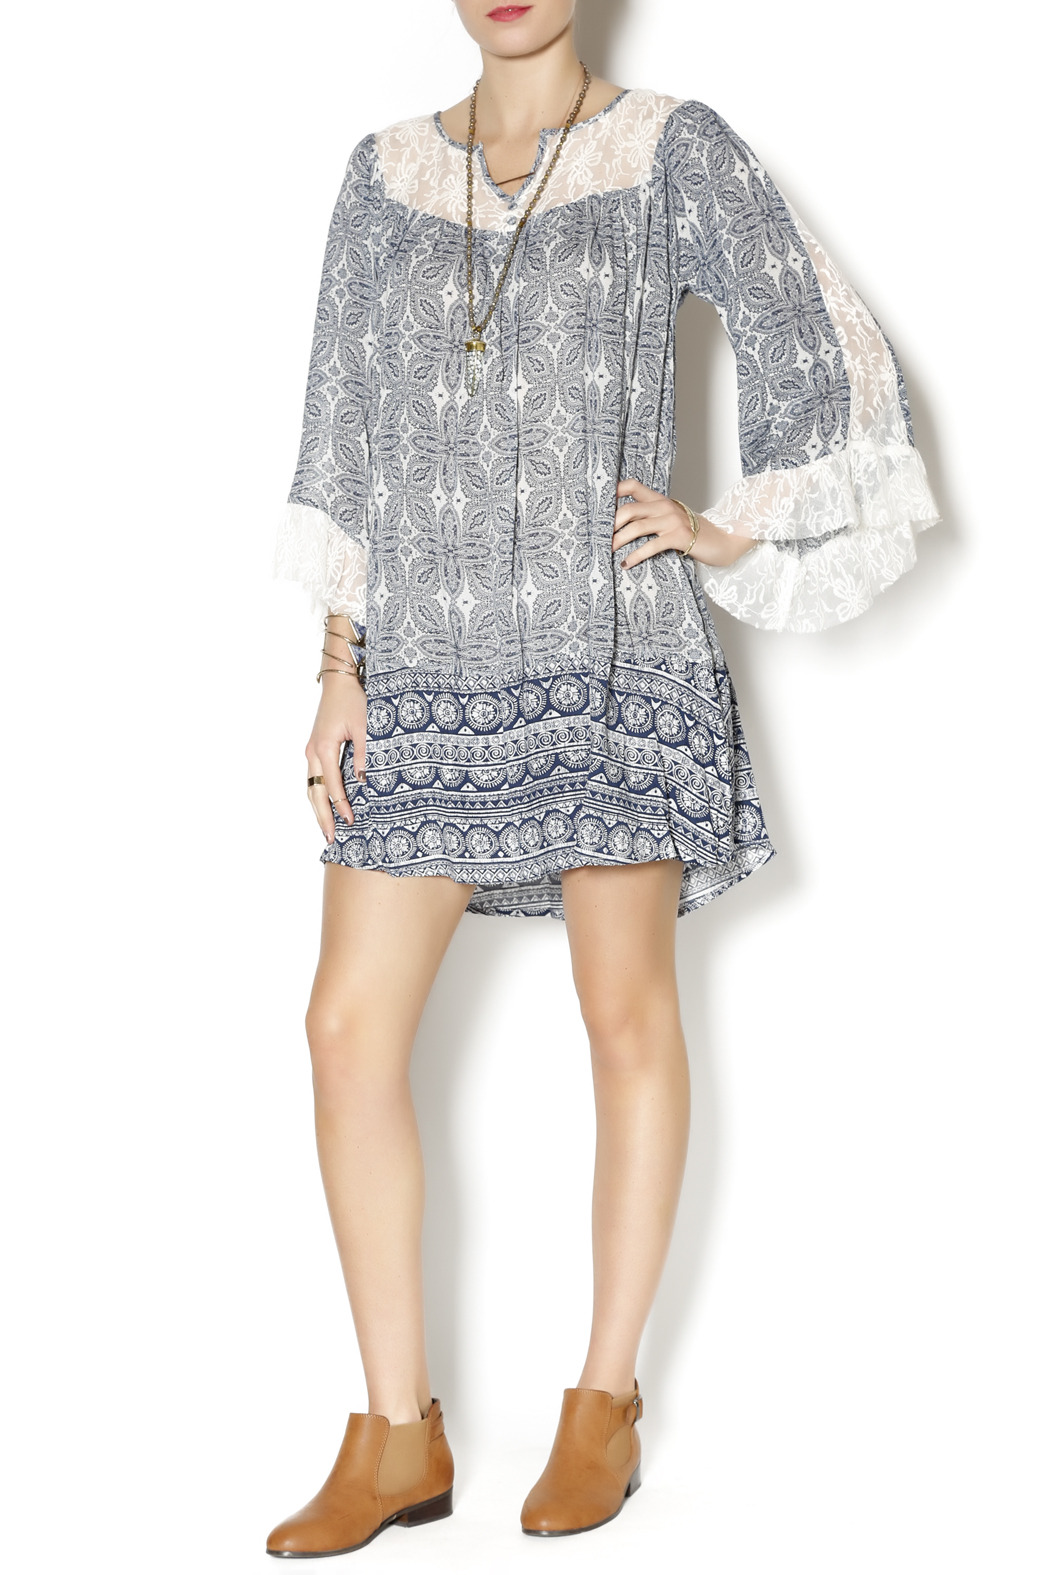 Umgee USA Blue Boho Dress - Front Full Image